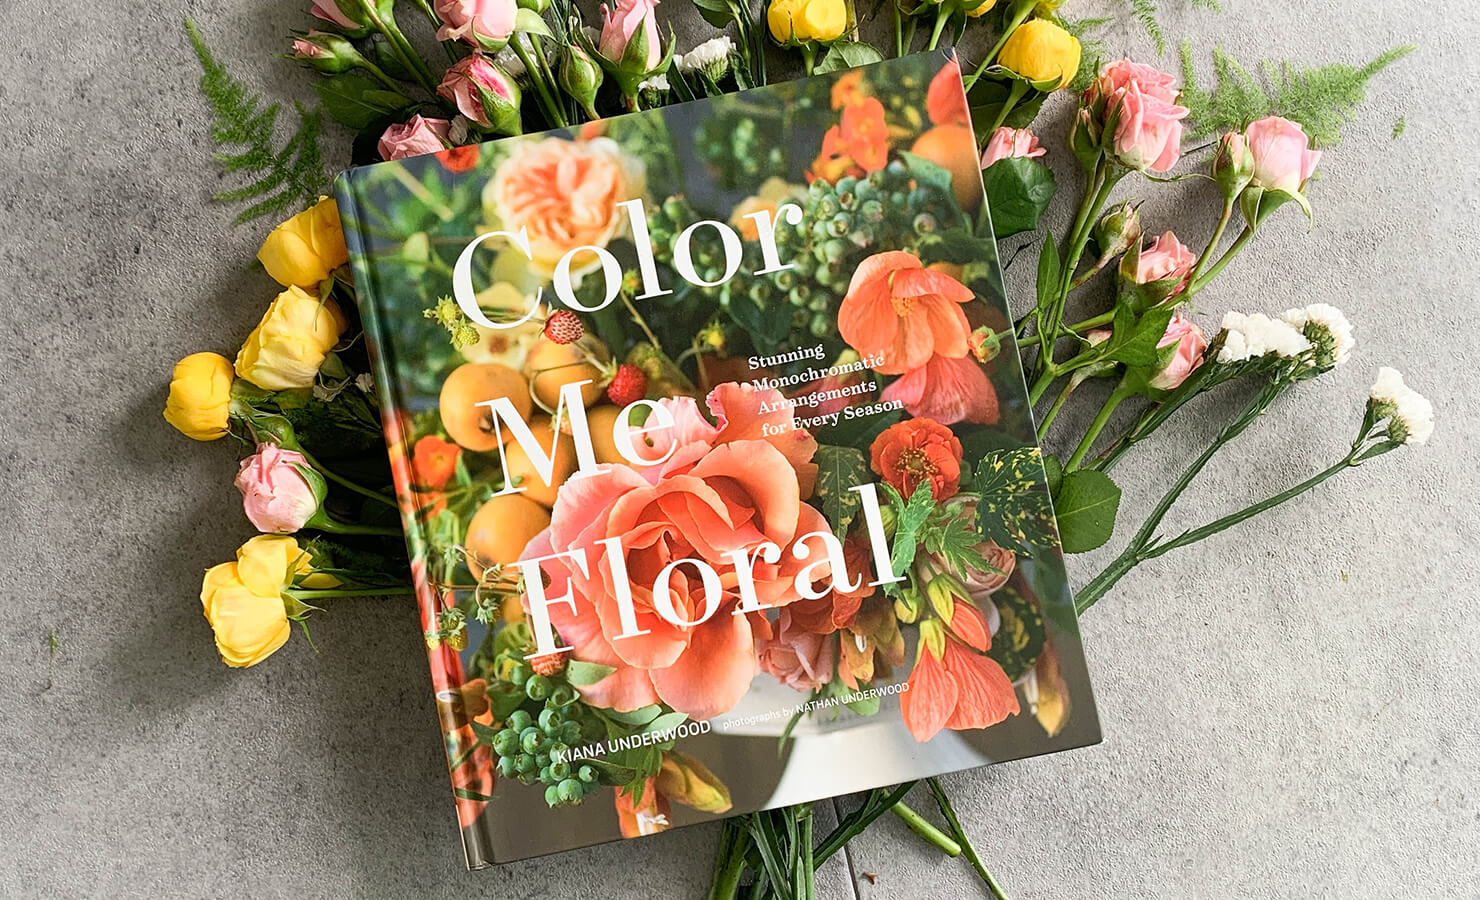 bloomthis-reads-series-02-color-me-floral-kiana-underwood